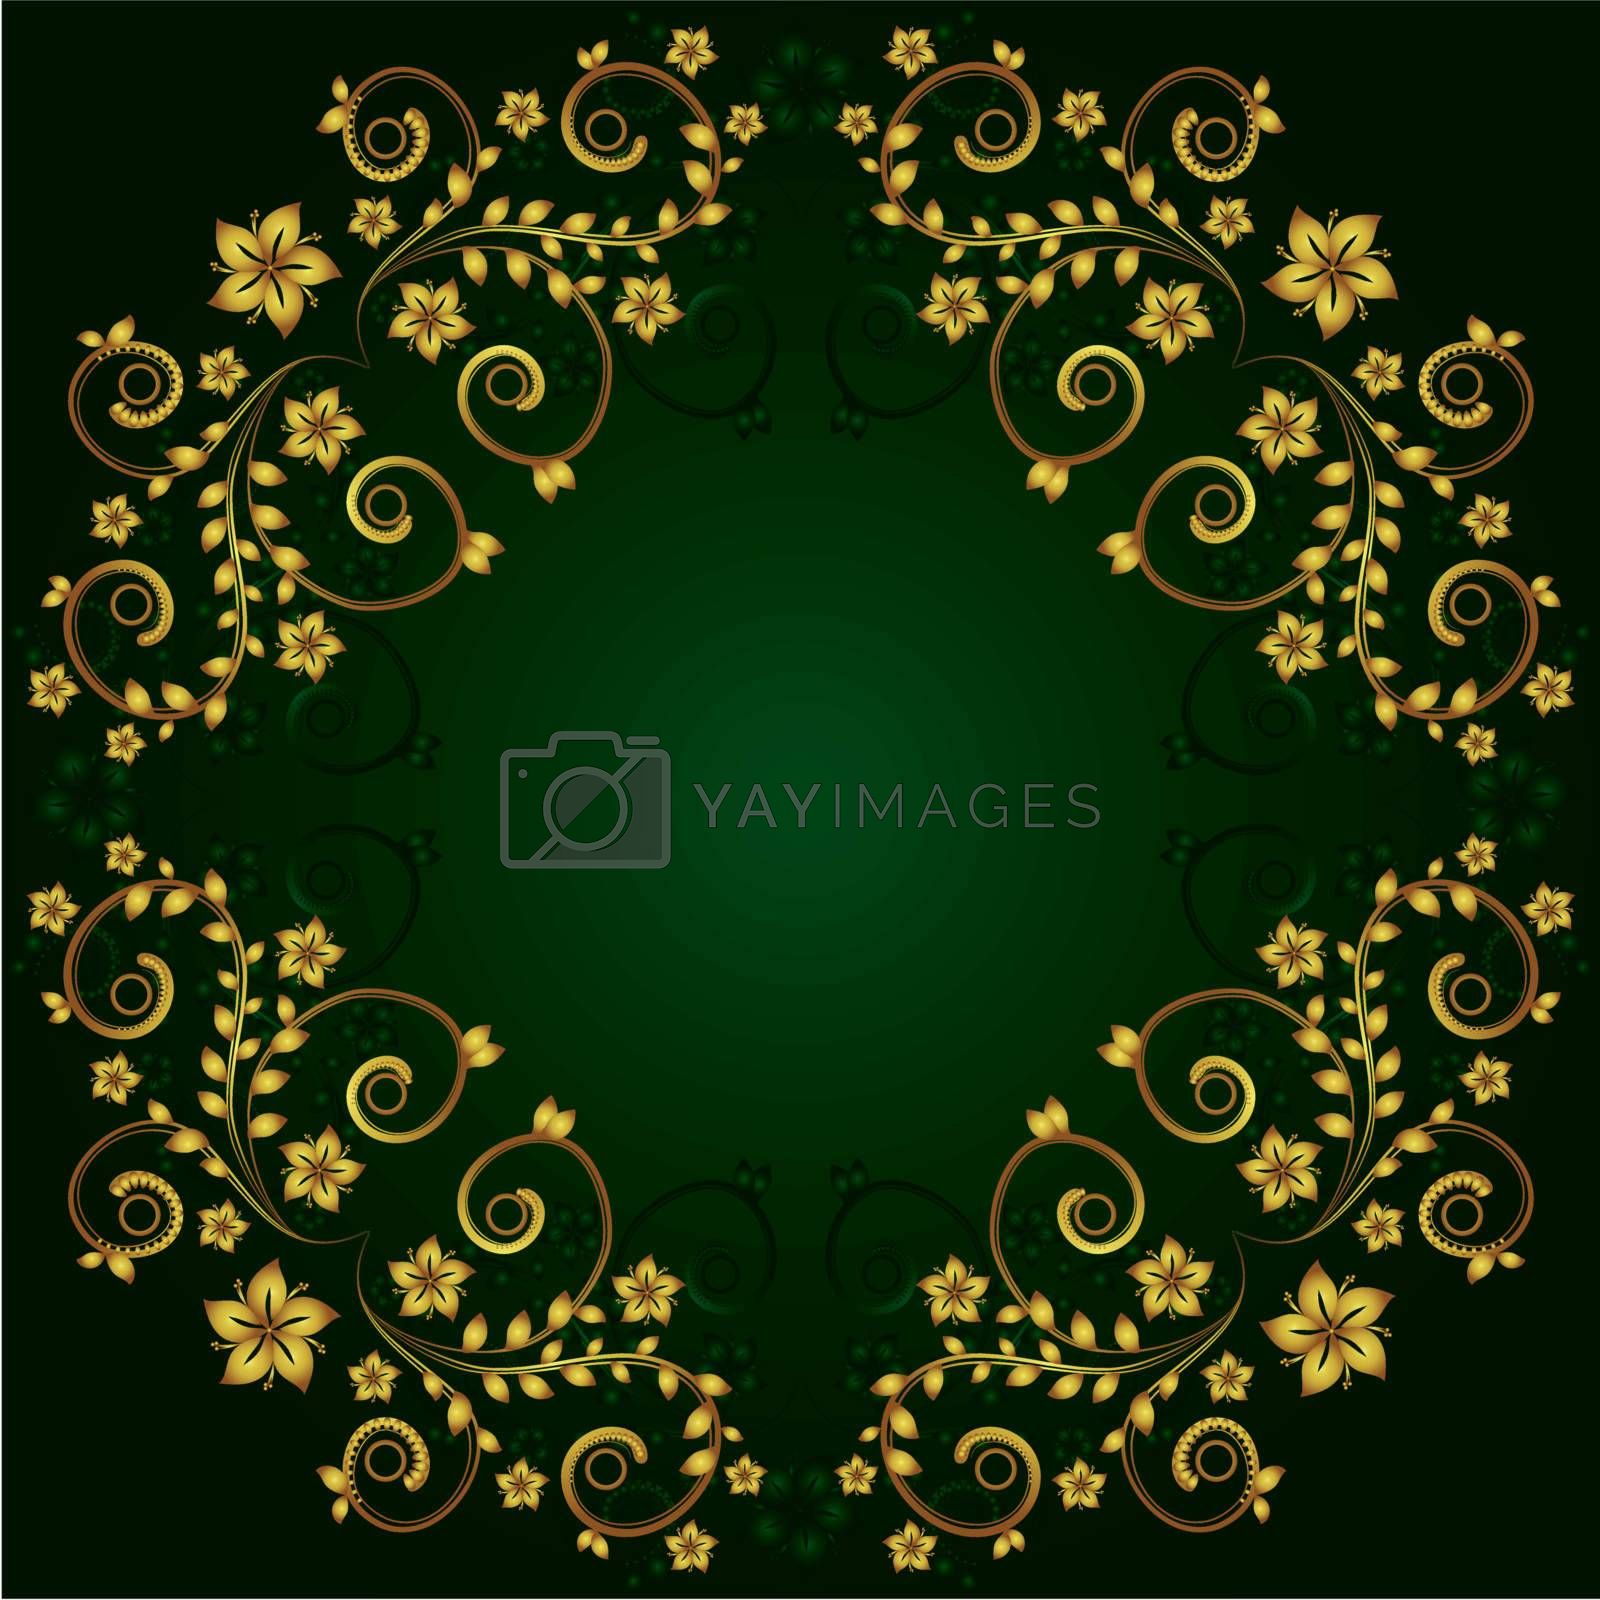 Abstract vector floral background for your design project.